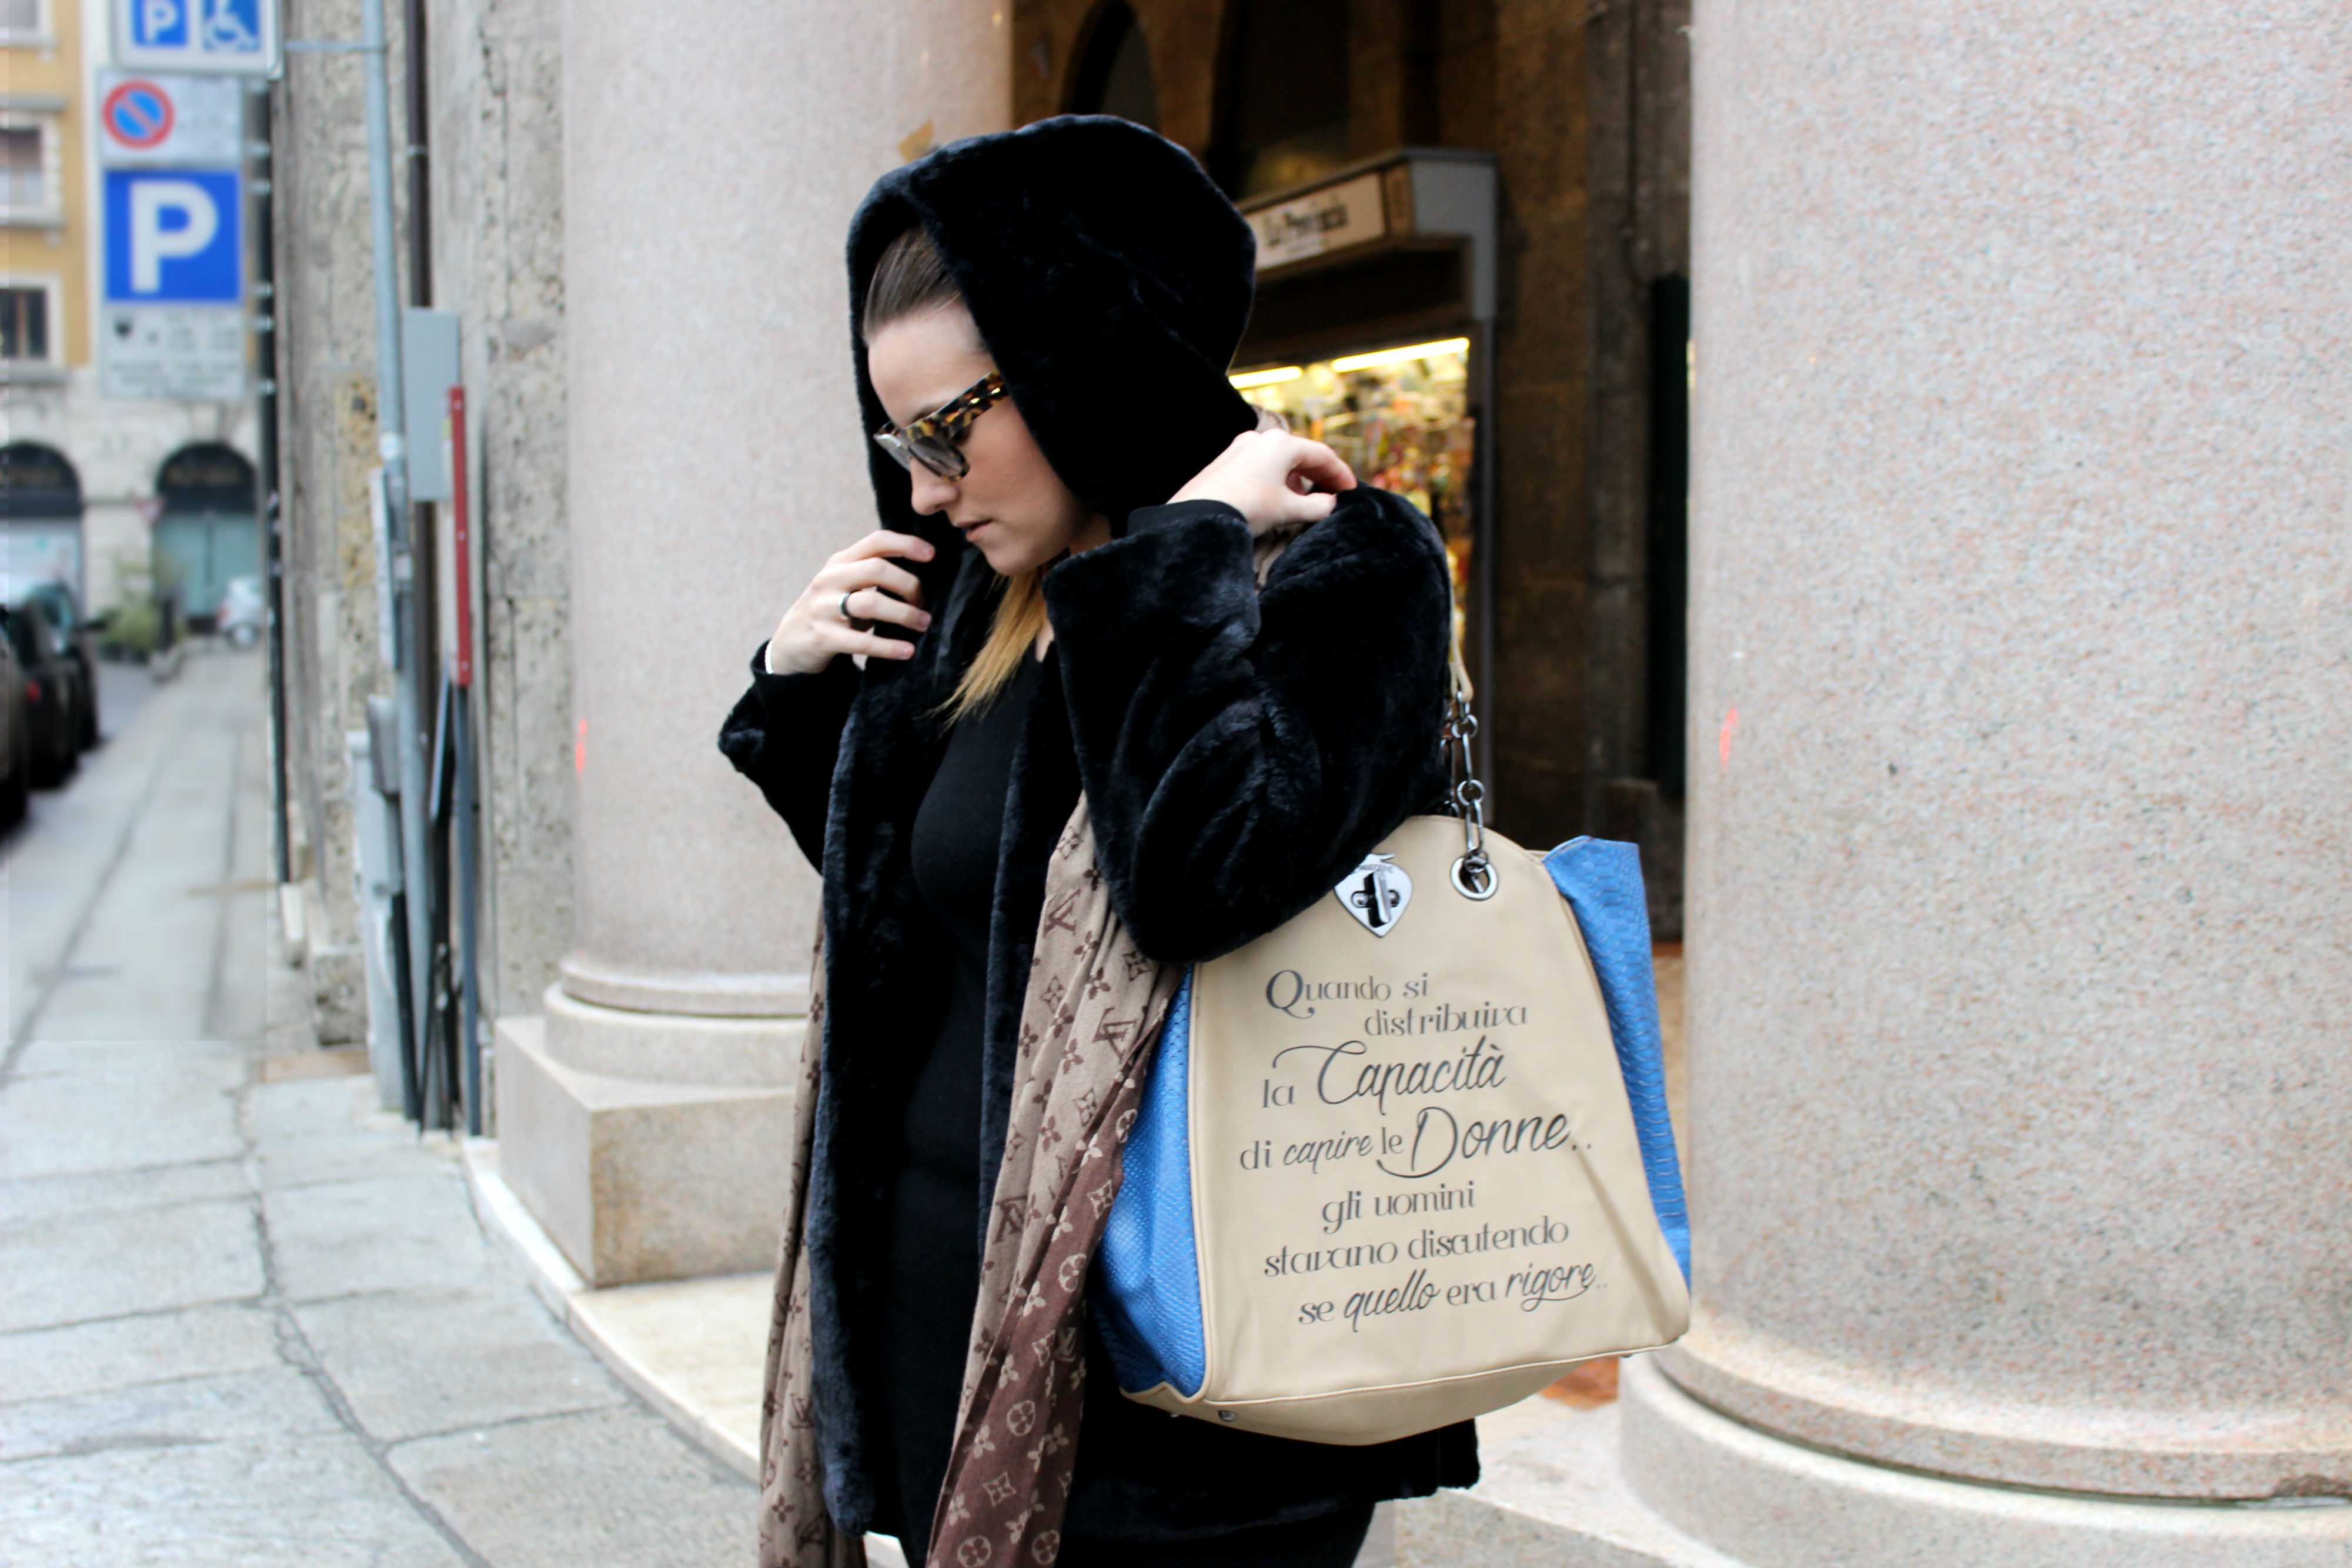 LEPANDORINE-bag-cheap-furcoat-prada-sunglasses5